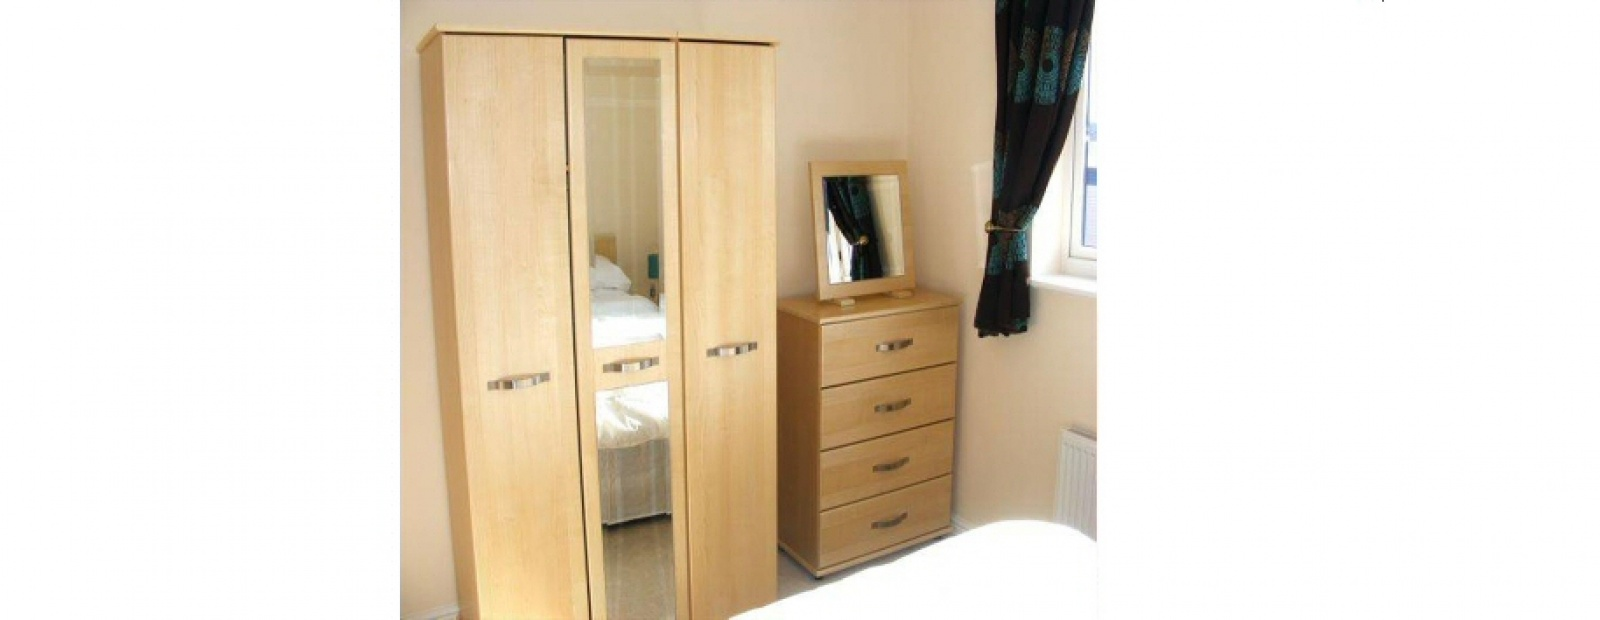 22 Archers' Walk, Stoke-on-Trent, Staffordshire, United Kingdom ST4 6JT, 2 Rooms Rooms,House,For Rent,Archers' Walk,1012